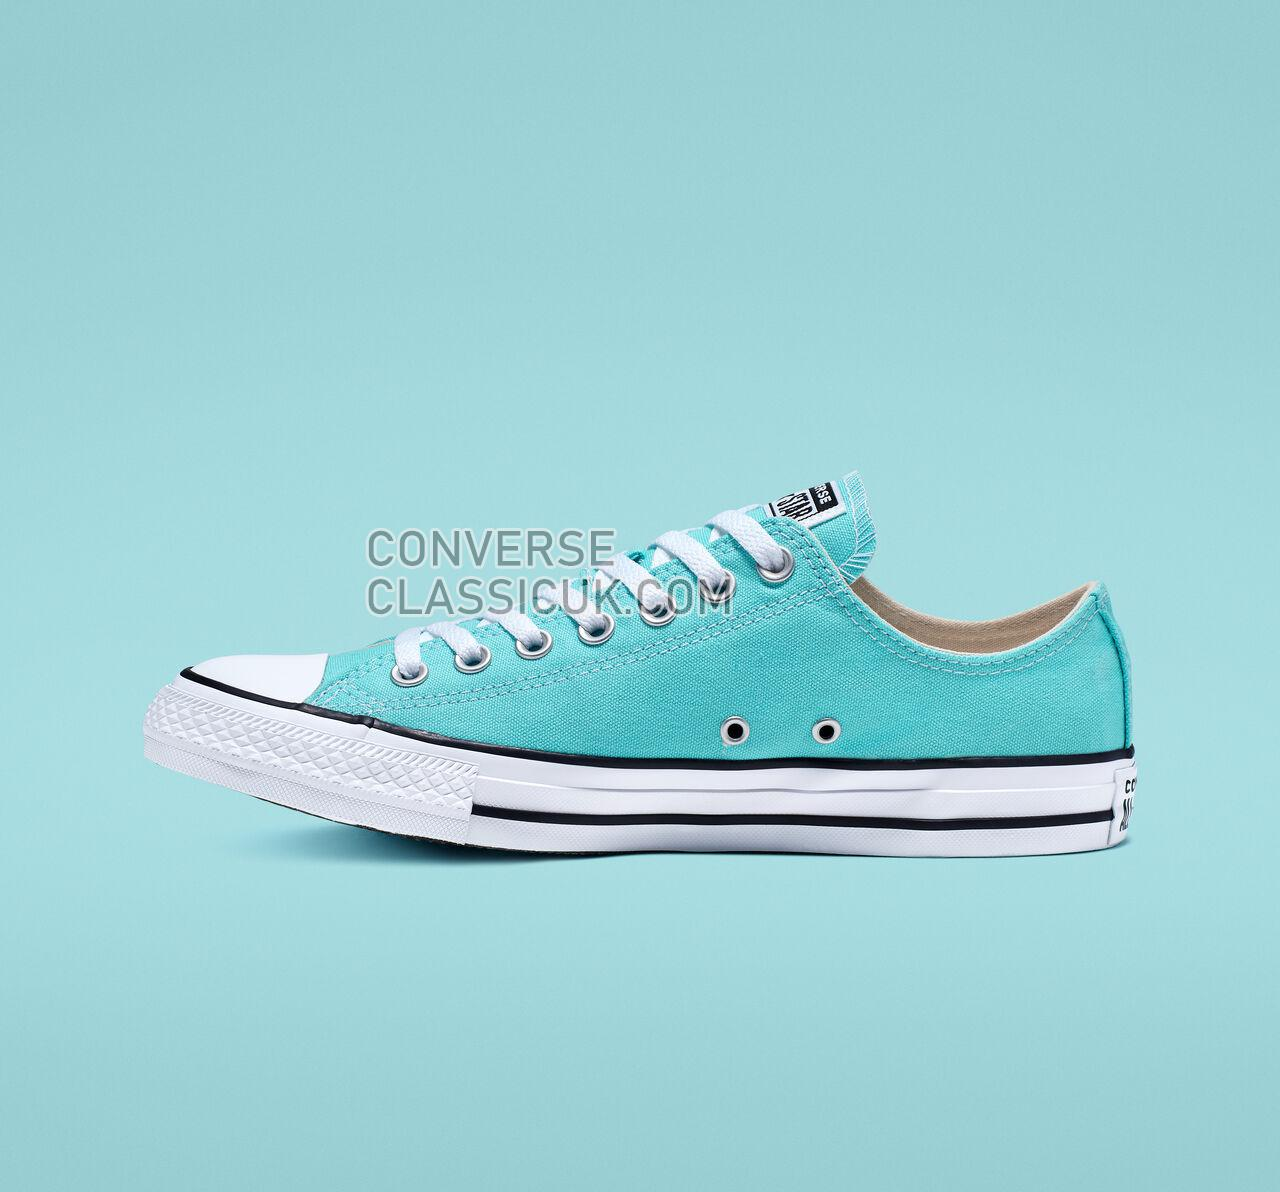 Converse Chuck Taylor All Star Seasonal Color Low Top Mens Womens Unisex 165496F Bleached Aqua/White/Black Shoes